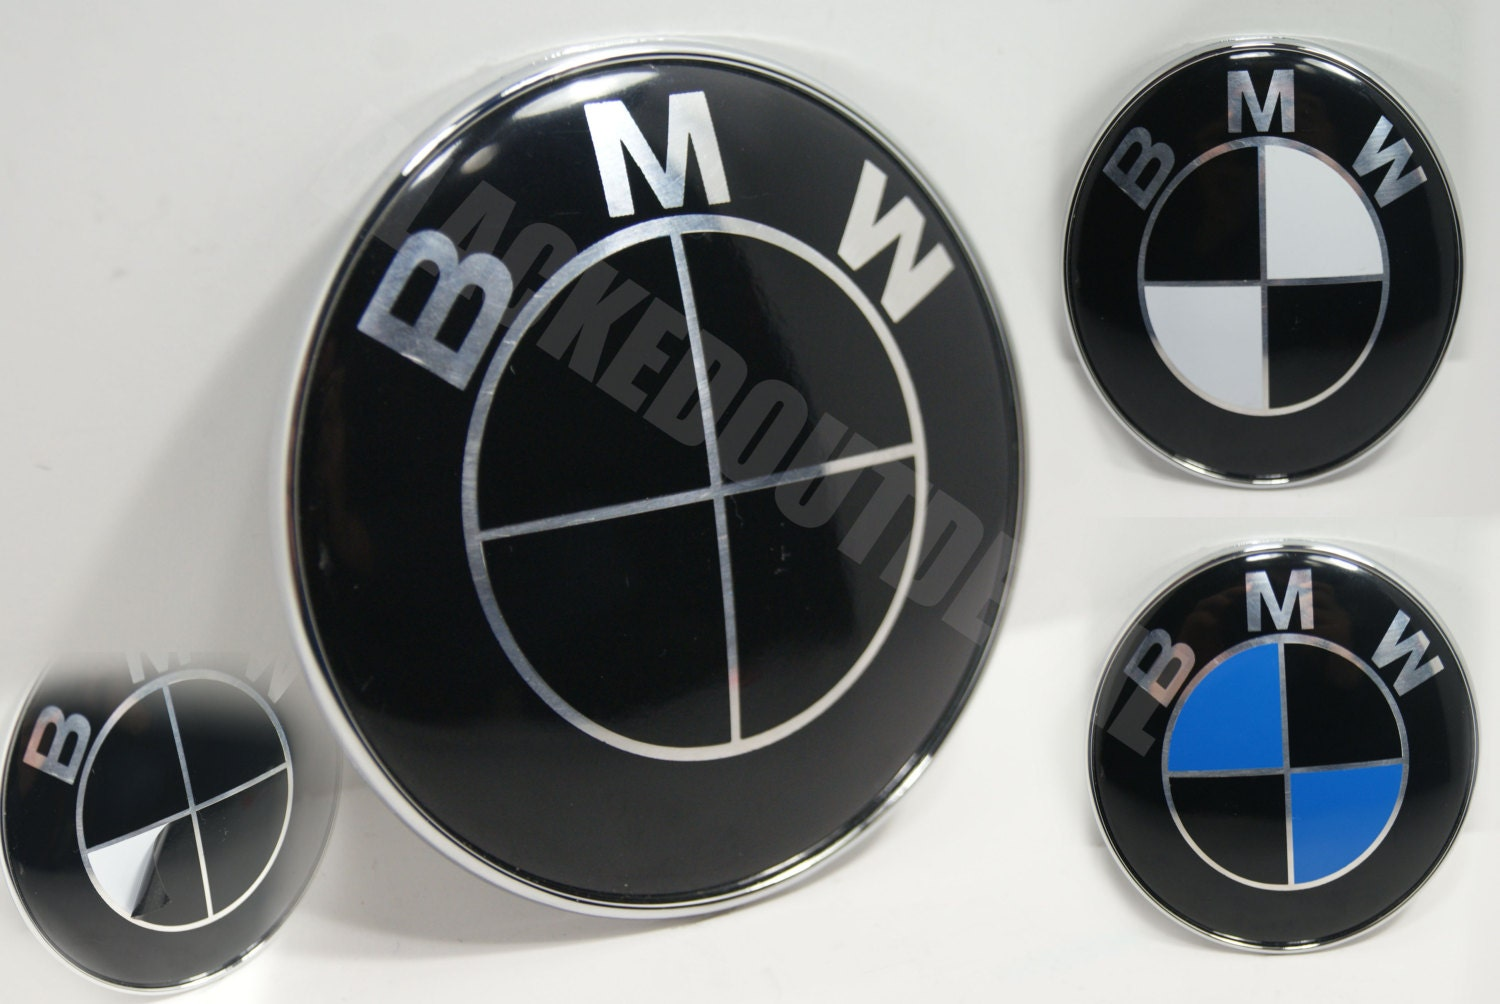 BMW Black Emblem Vinyl Overlay Rims Hood Trunk Steering Wheel - Bmw decals for wheels